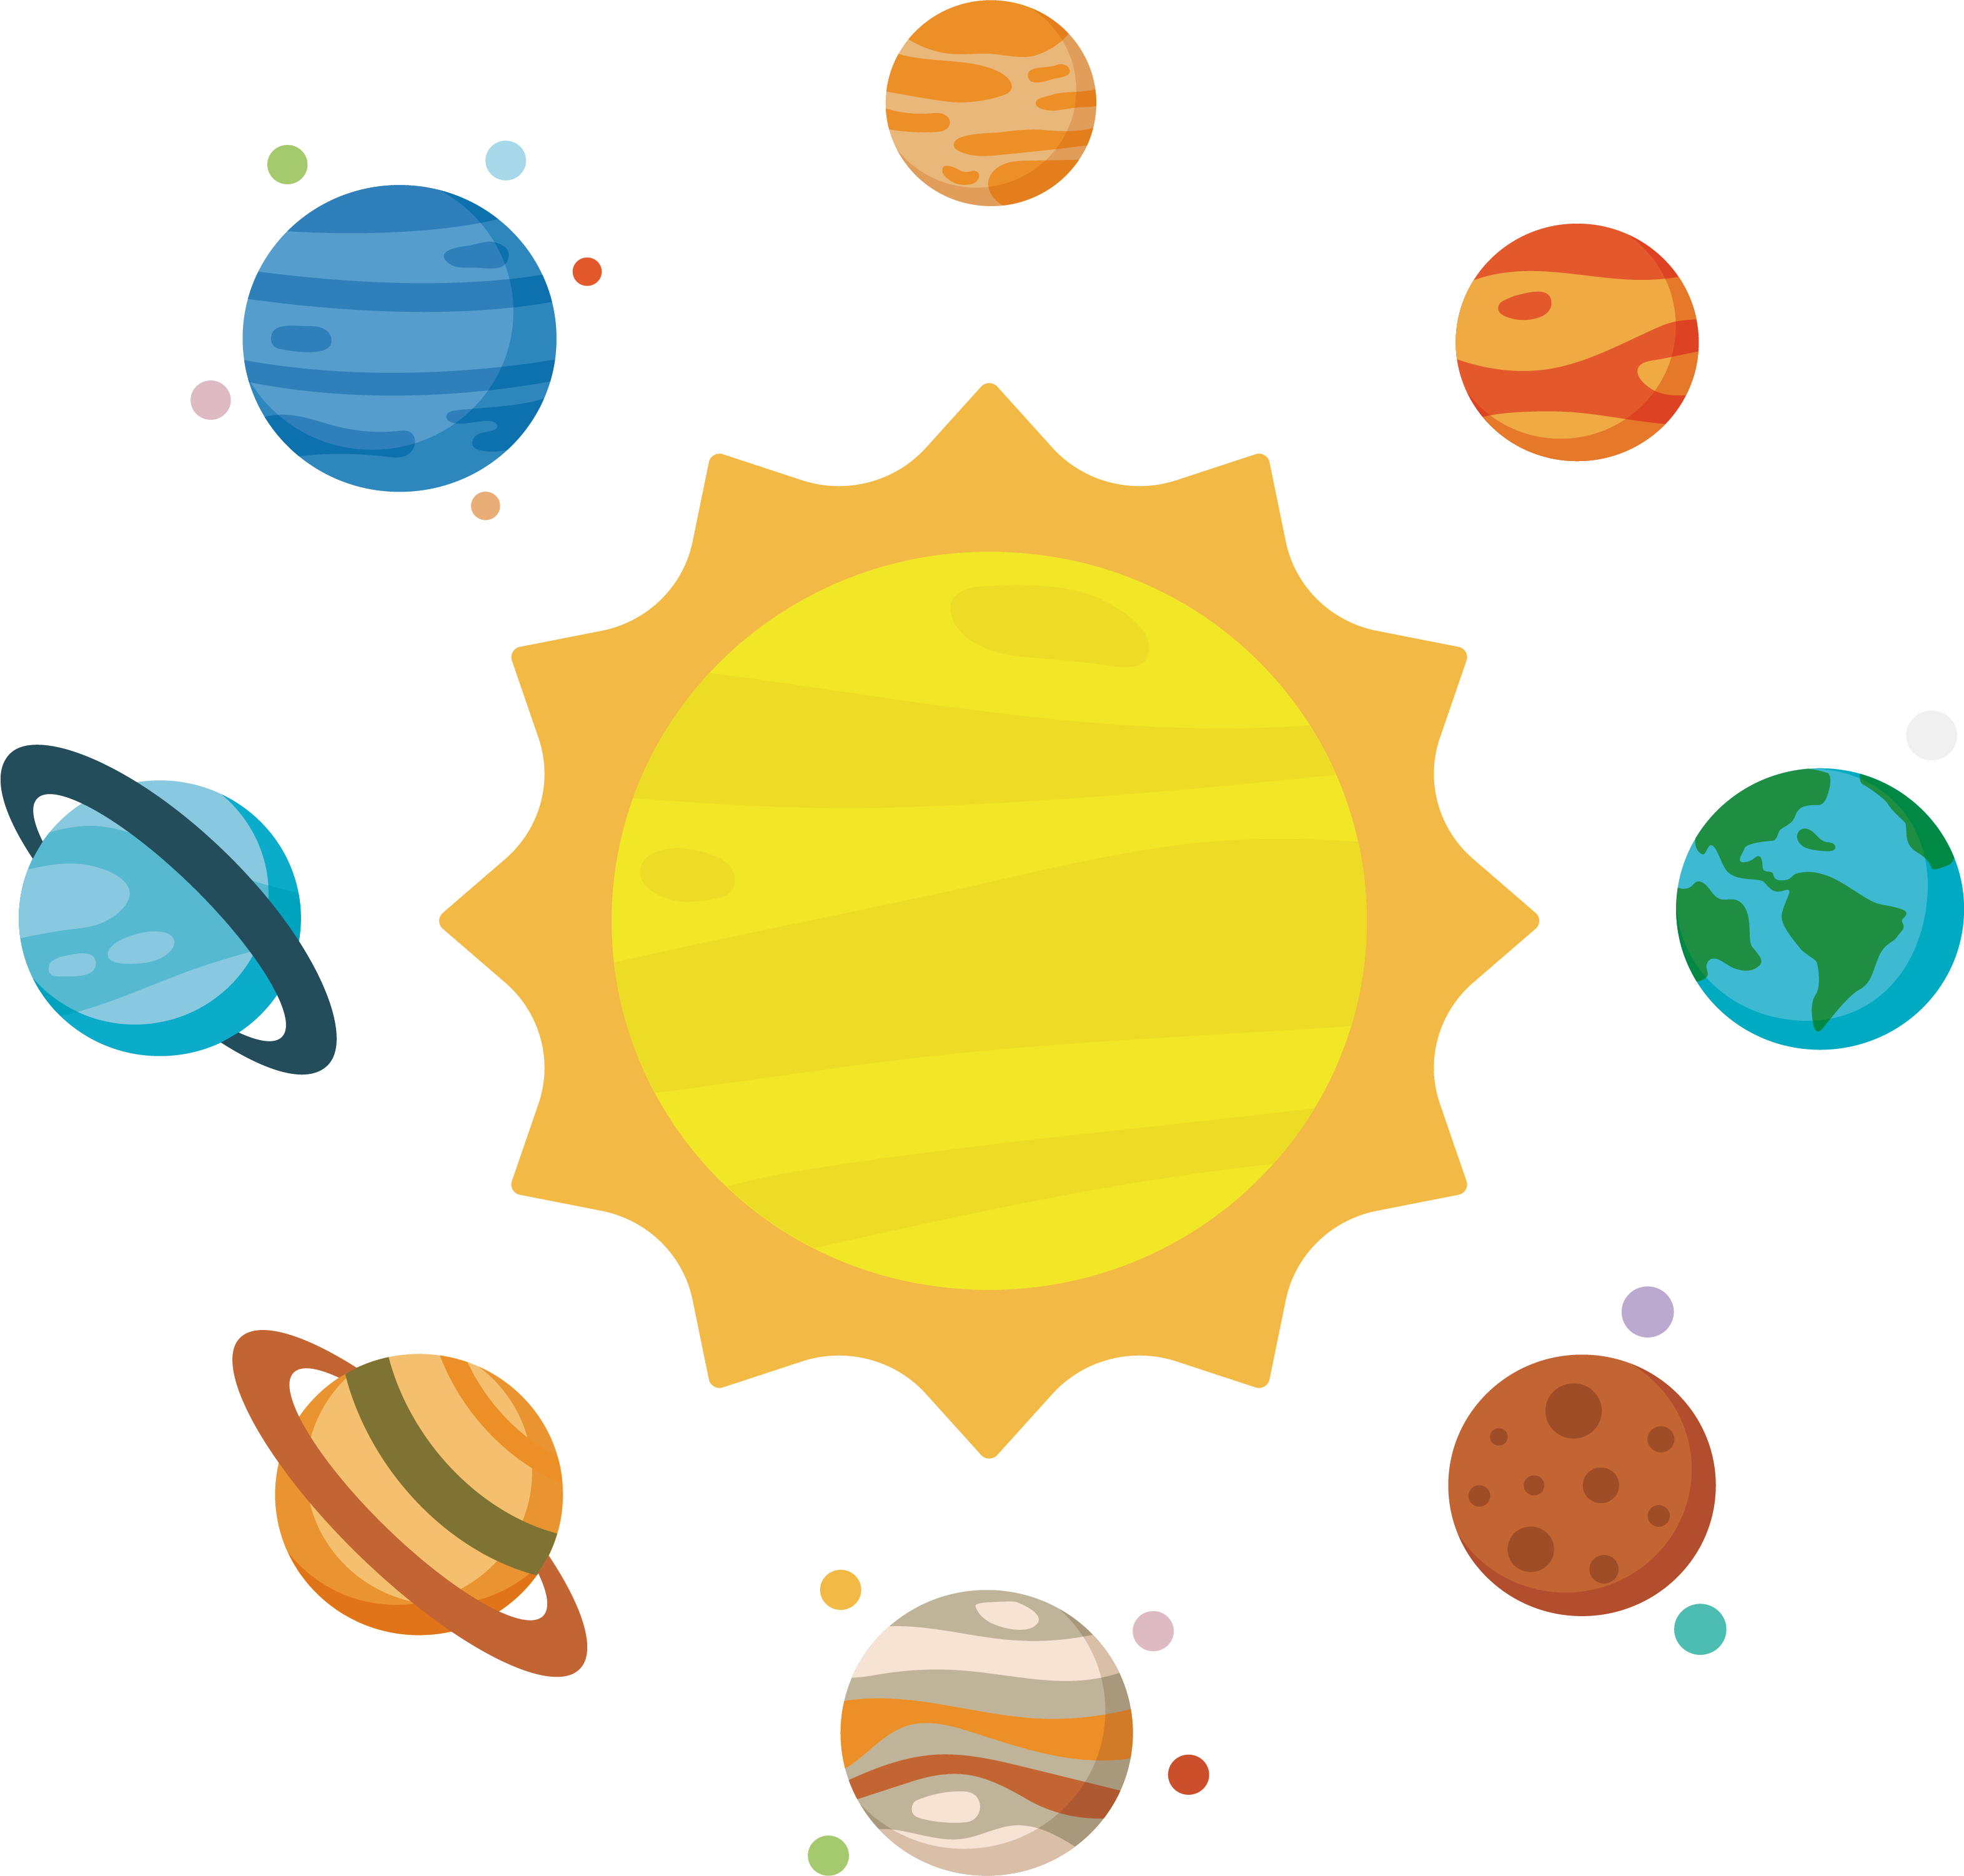 Apple planet clipart clip art royalty free stock Solar System Planet Clip art - Astronomy solar system 3144*3003 ... clip art royalty free stock